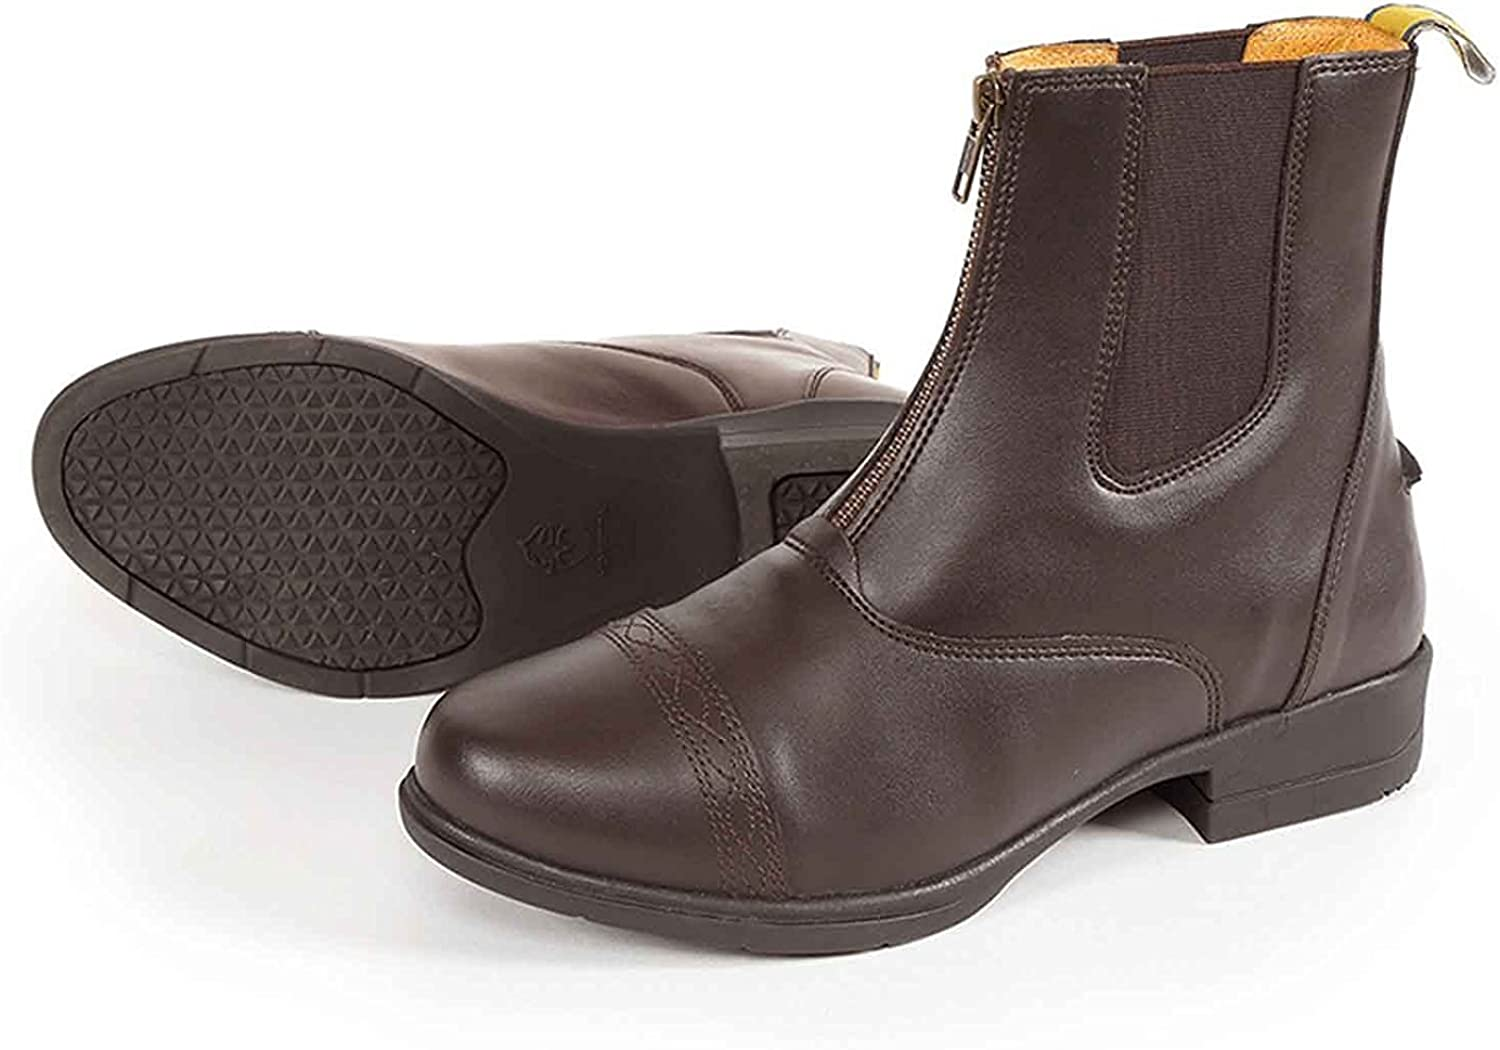 Brown Shires Moretta Childrens//Adults Clio Paddock Boots